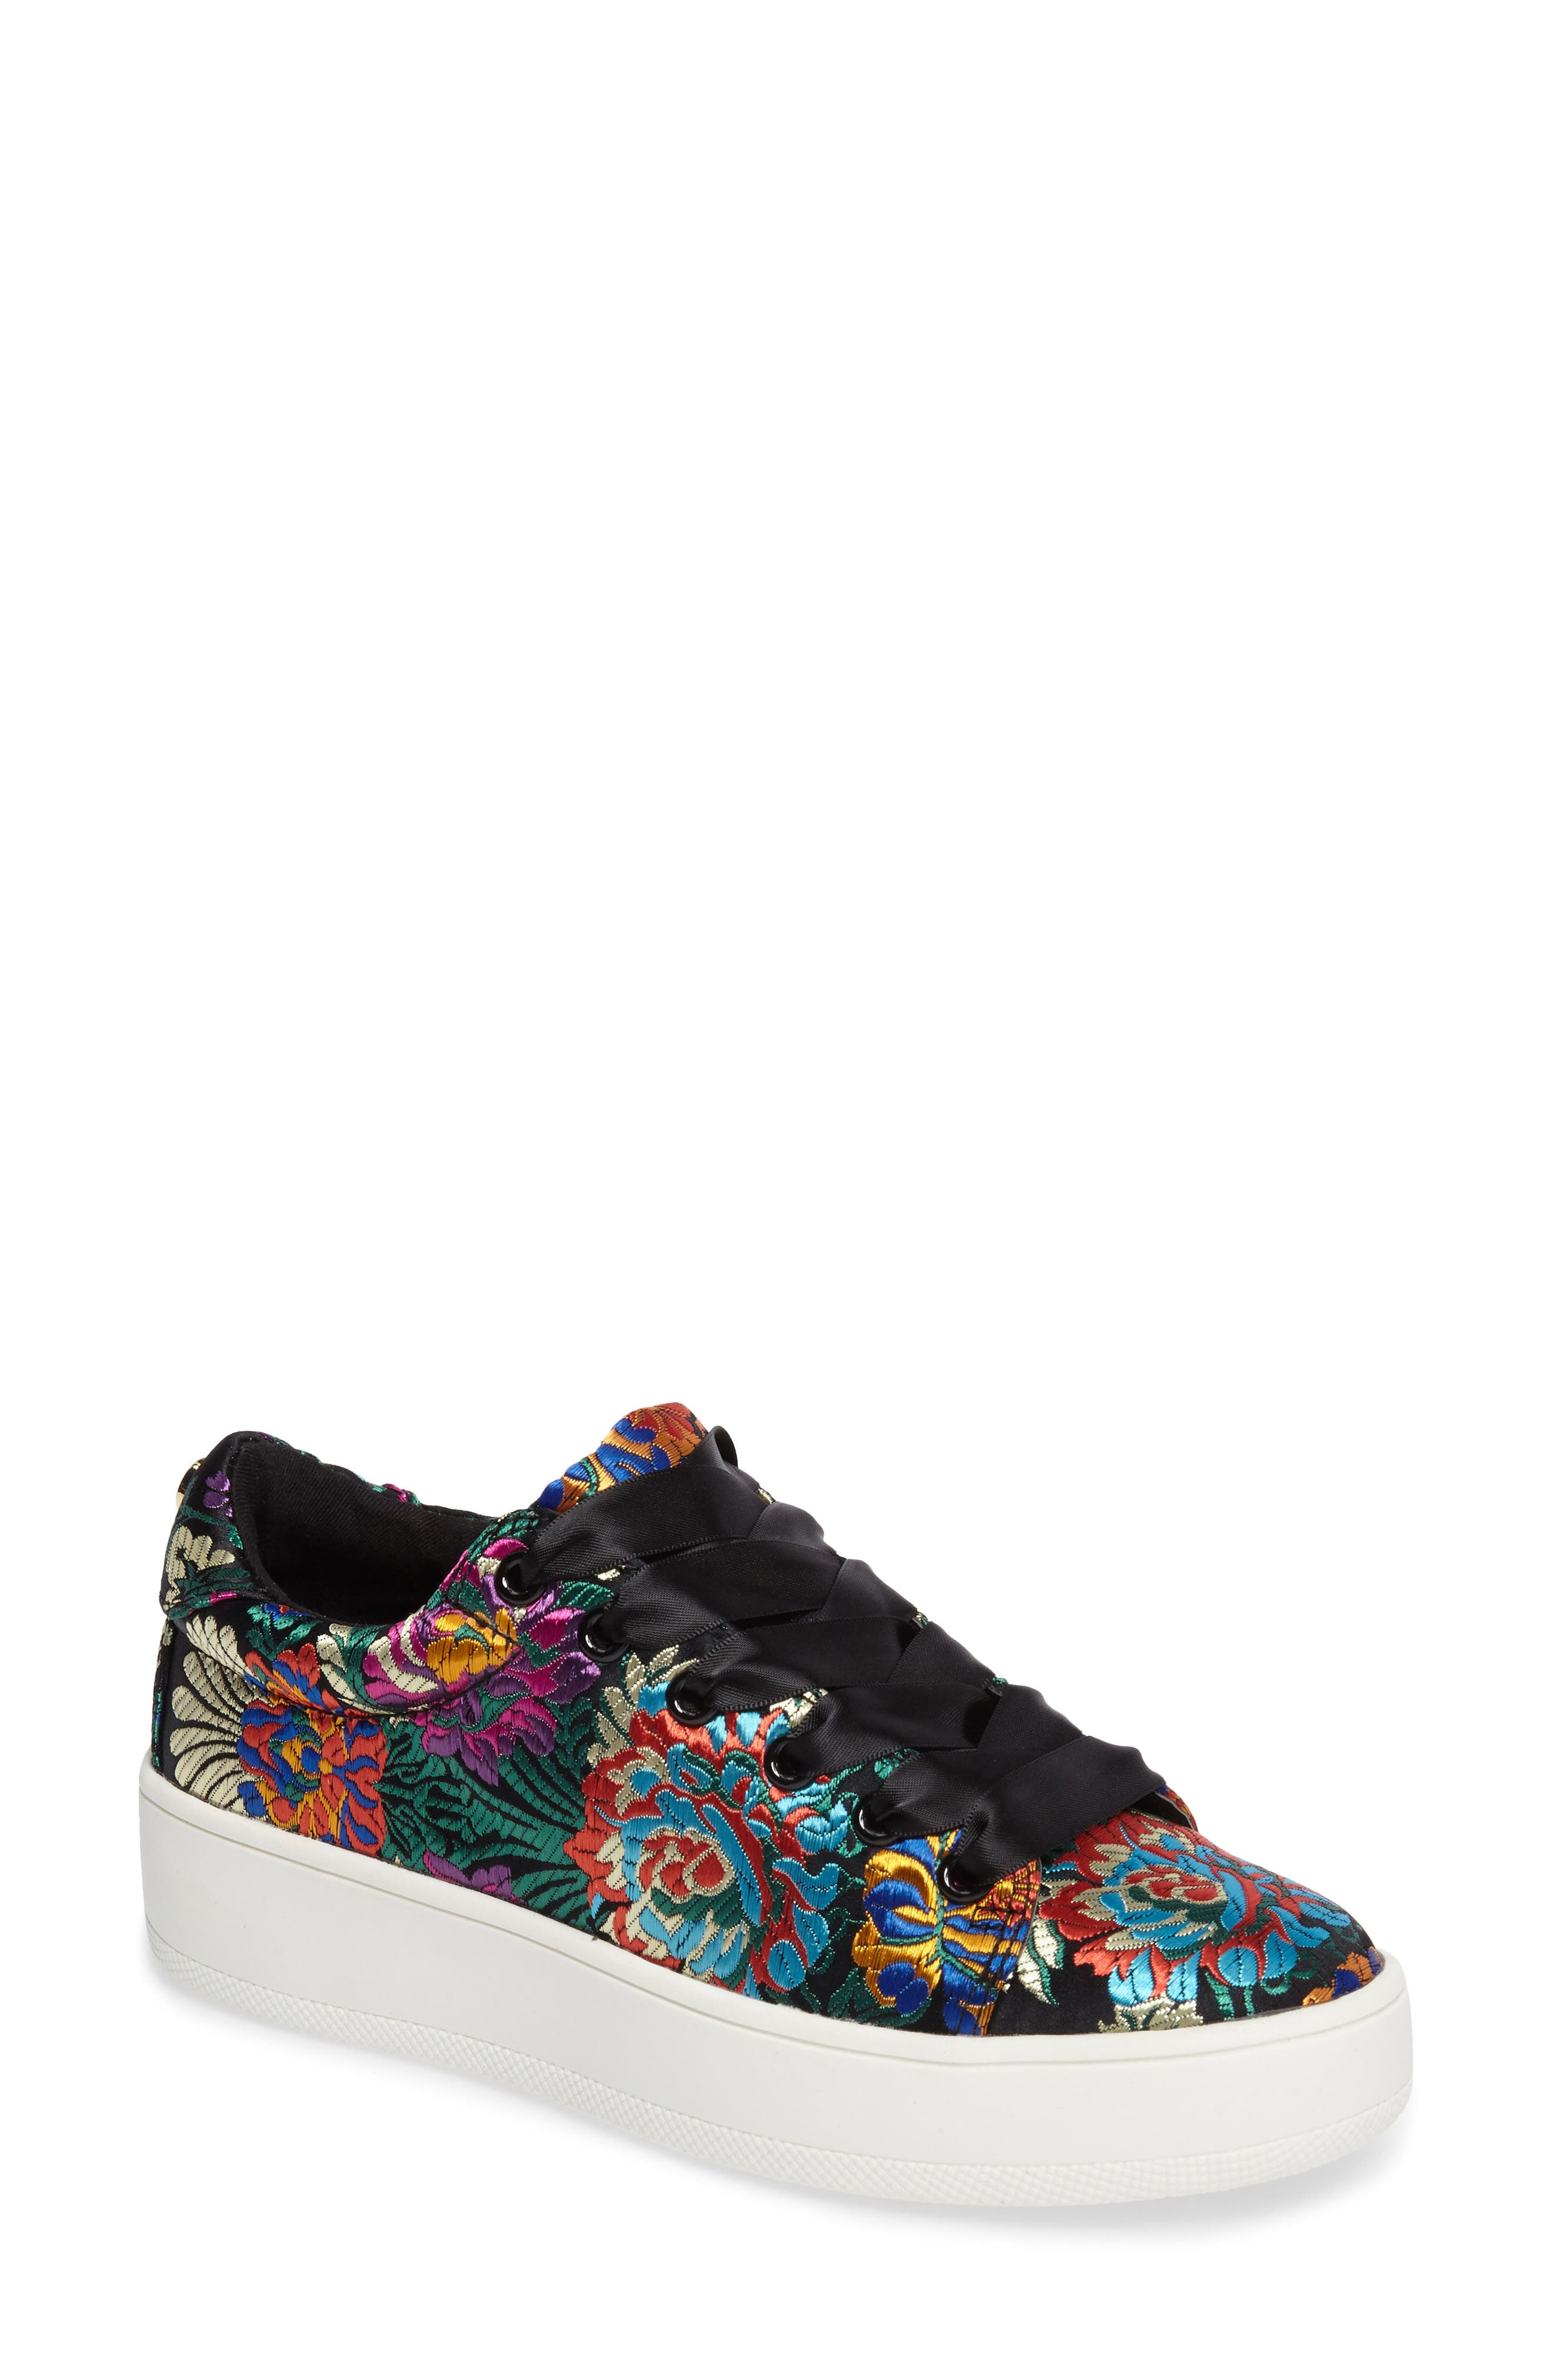 Brody Embroidered Flower Sneaker,                             Main thumbnail 1, color,                             Multi